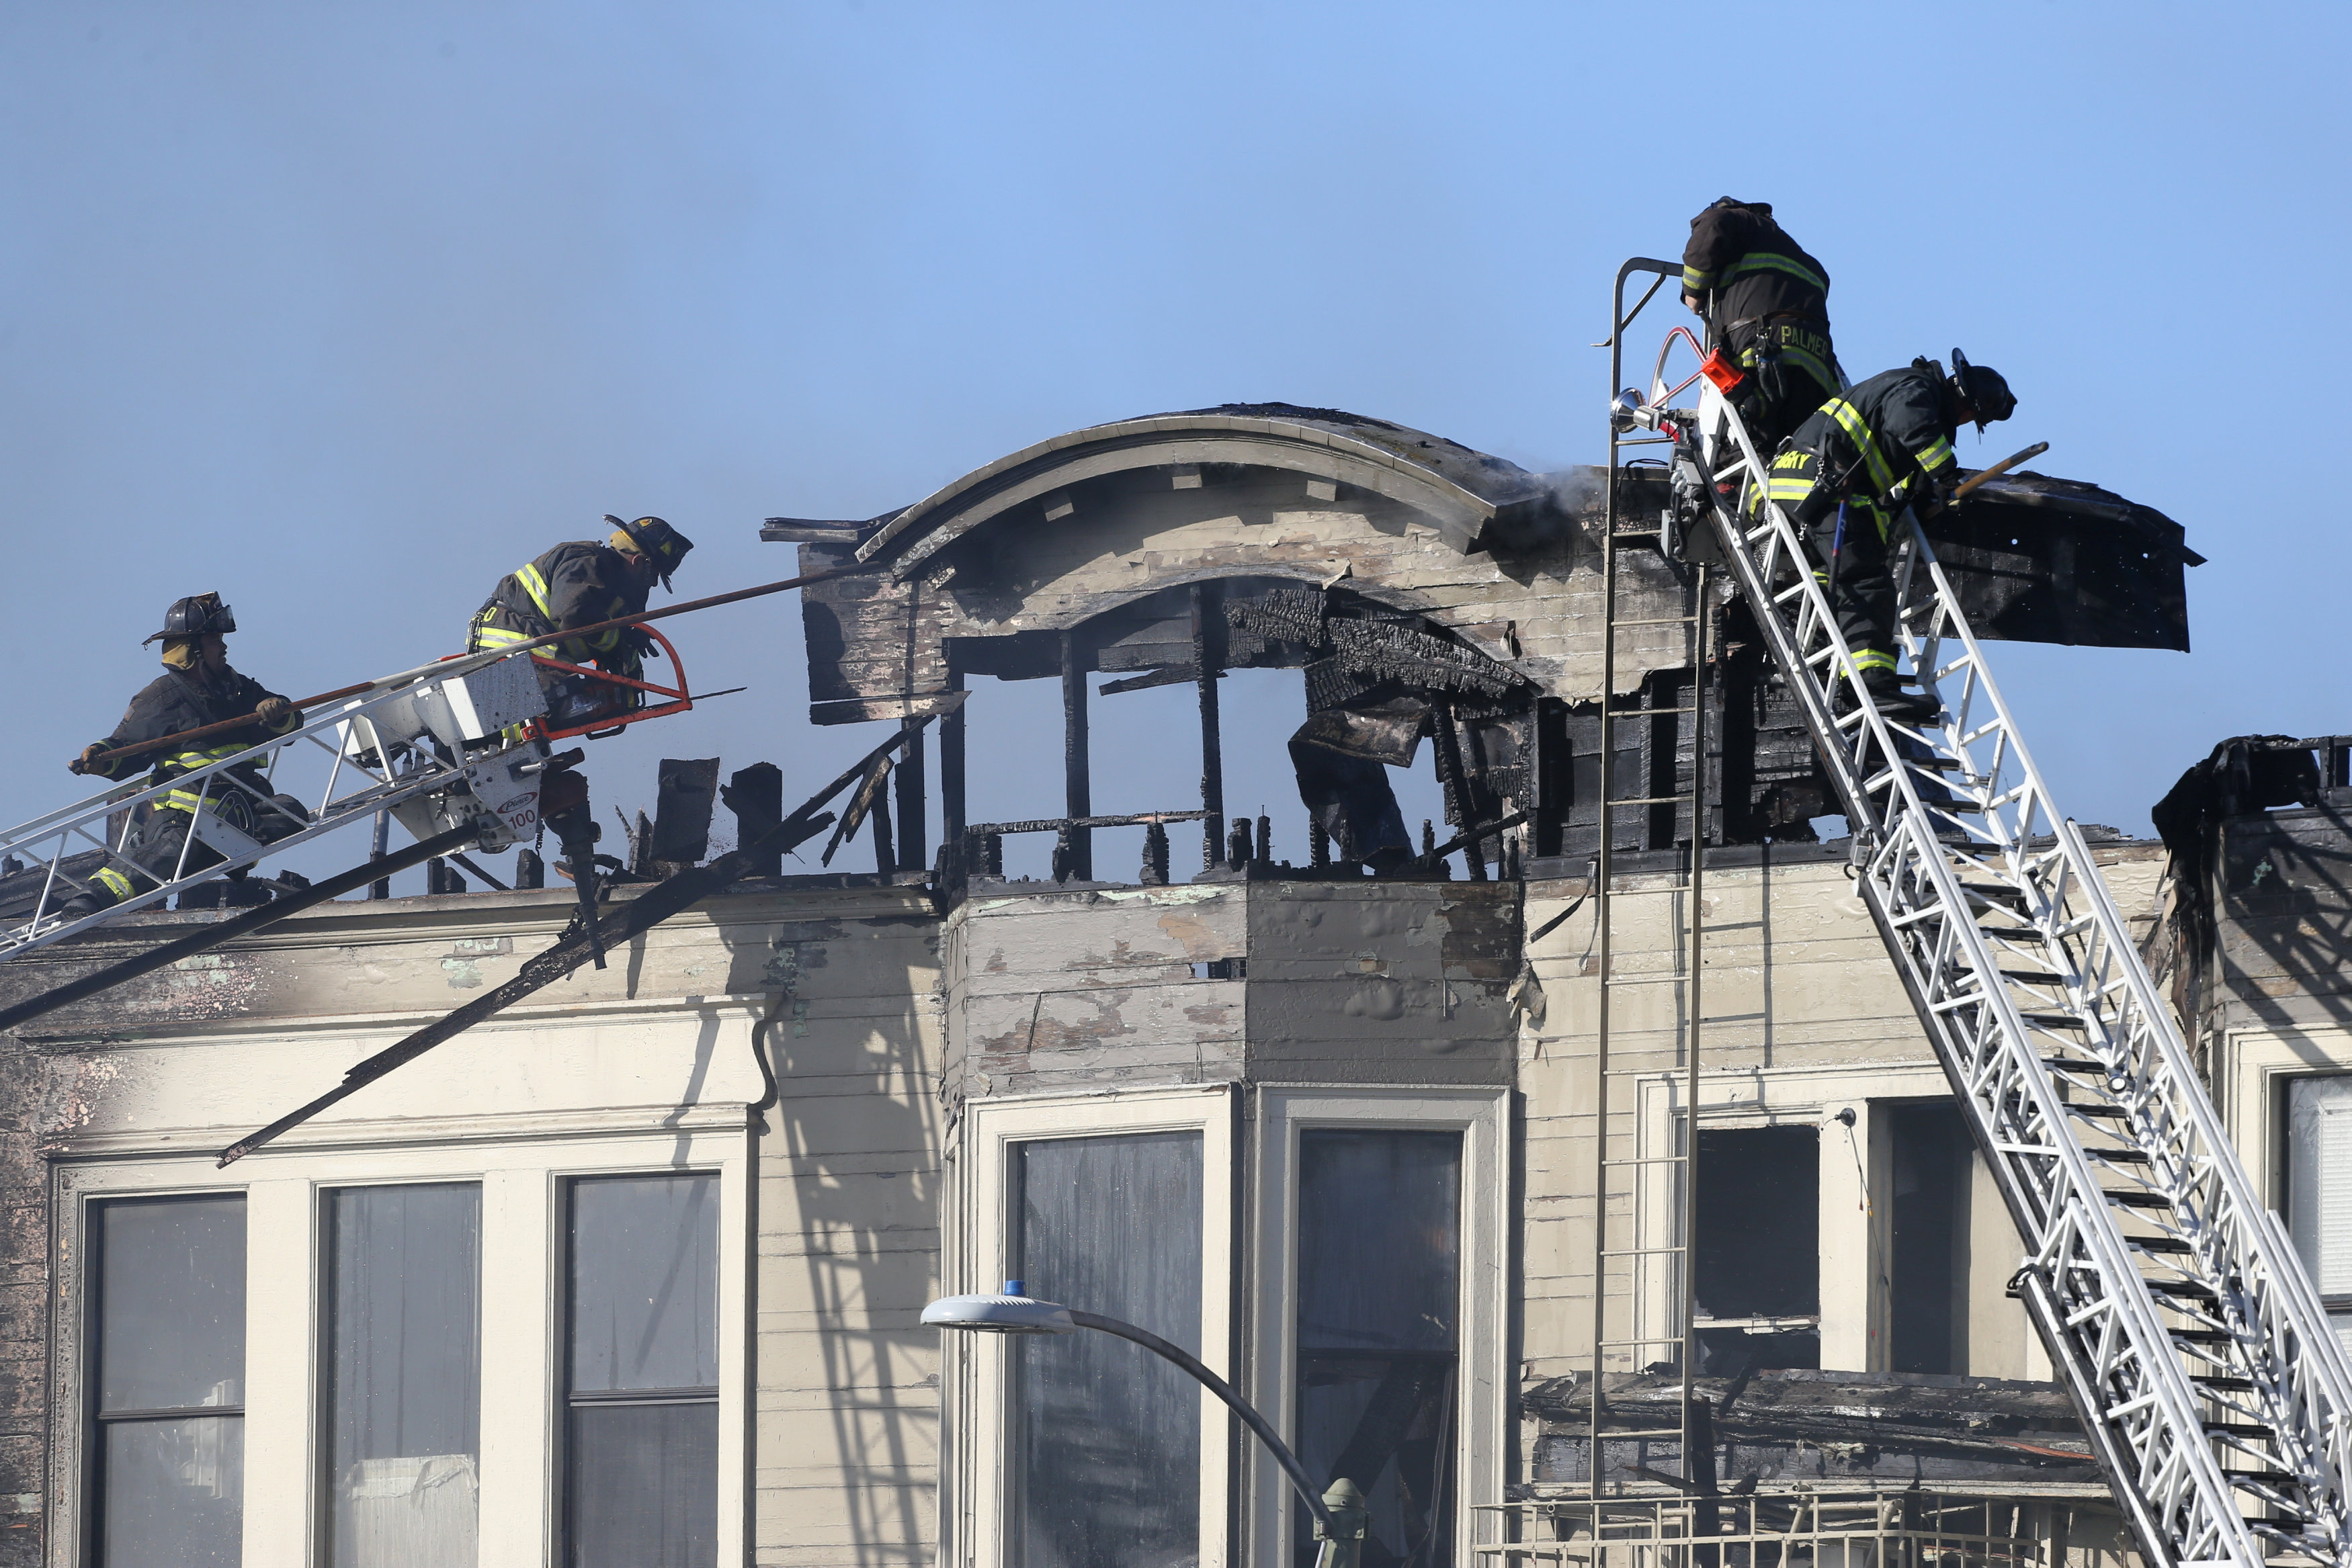 Firefighters battle a four-alarm blaze in a three-story apartment building in Oakland, California, U.S. March 27, 2017. (REUTERS/Beck Diefenbach)